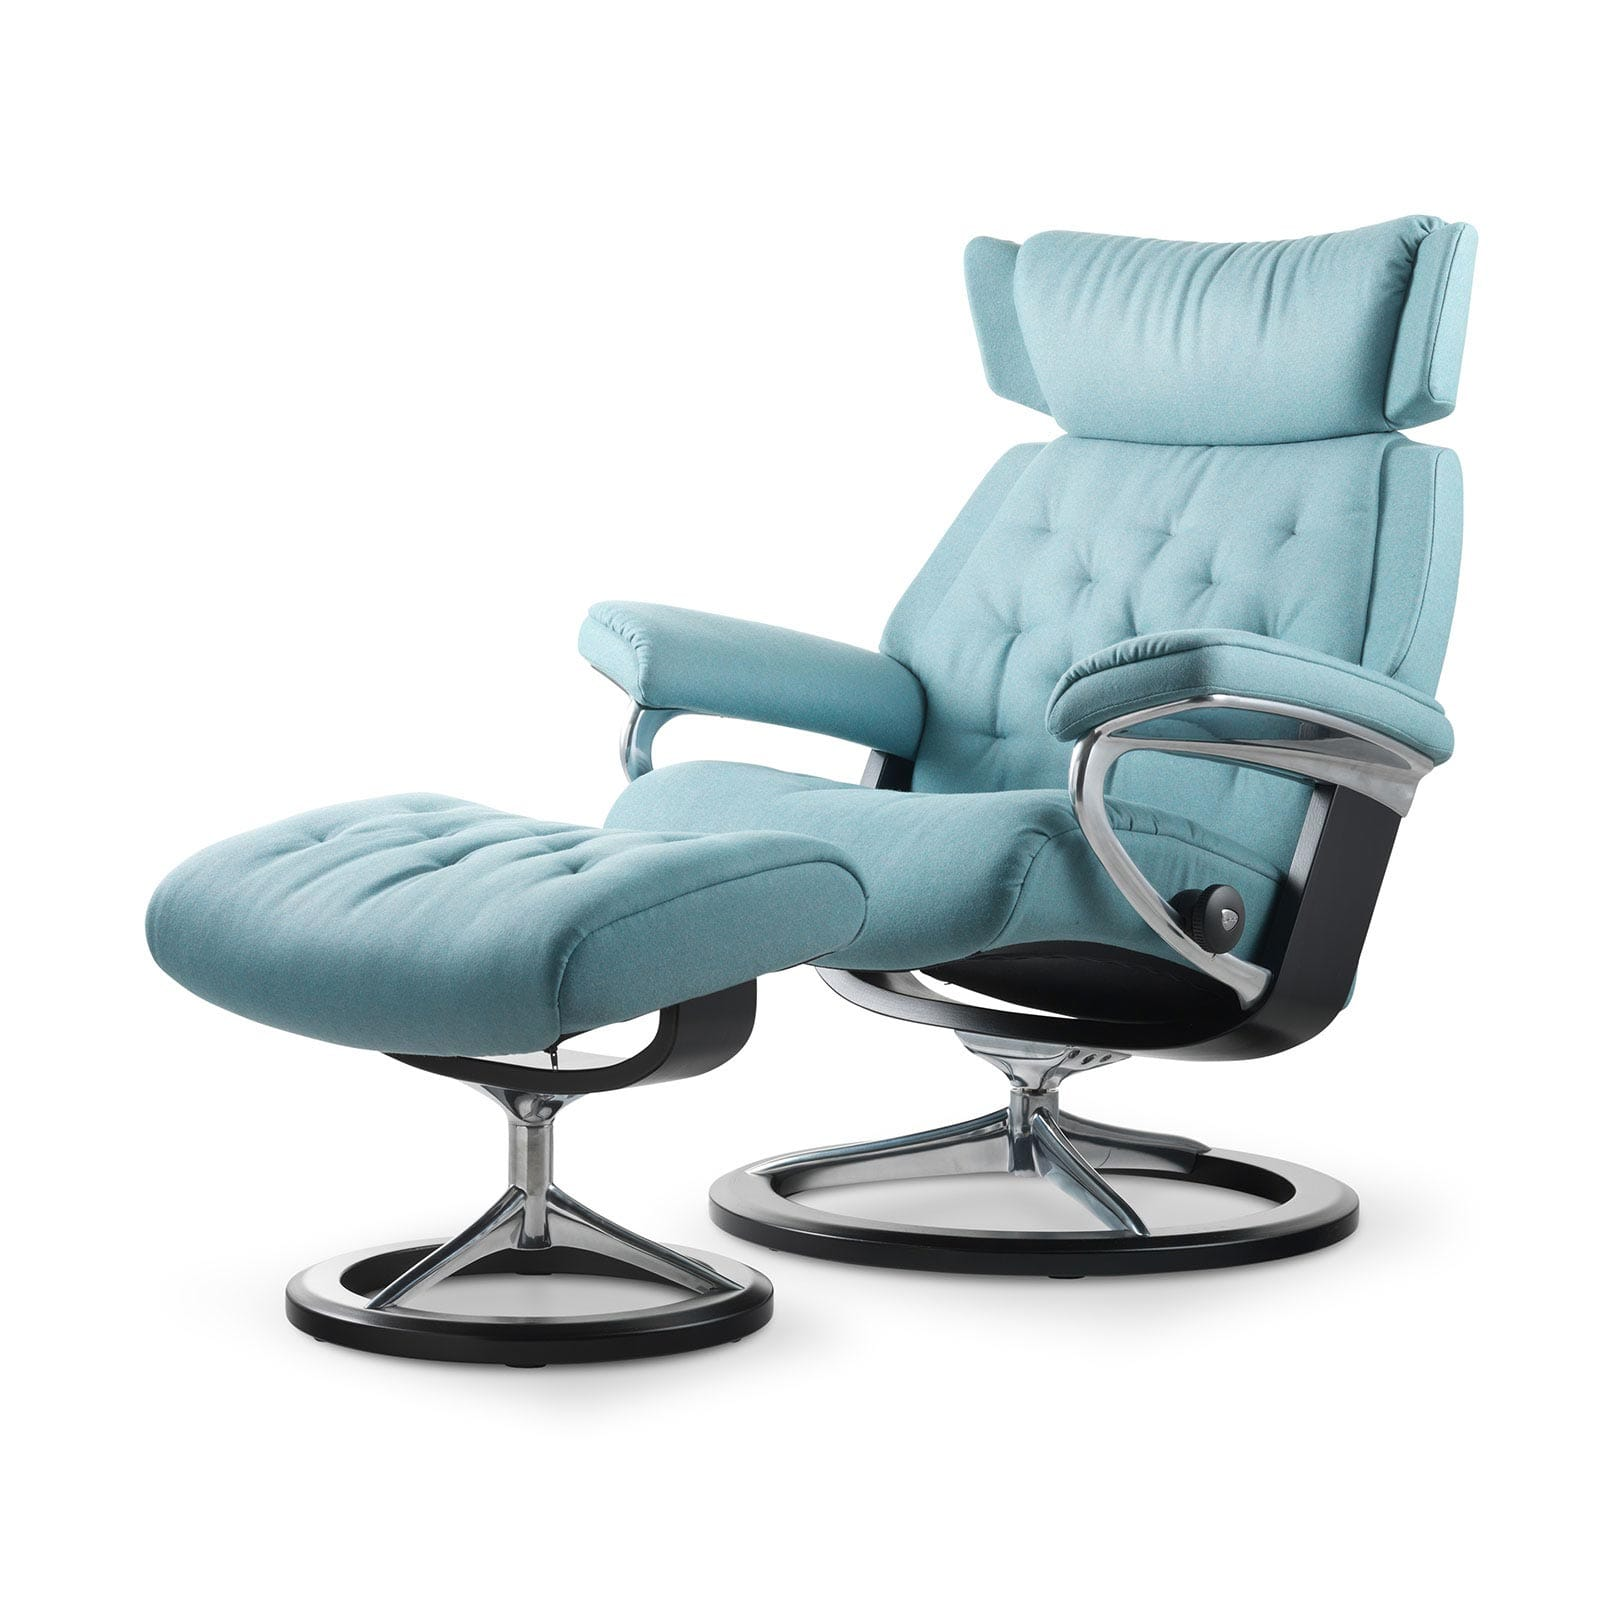 Stressless Sessel Skyline Stressless Skyline Calido Aqua Signature Wenge Mit Hocker